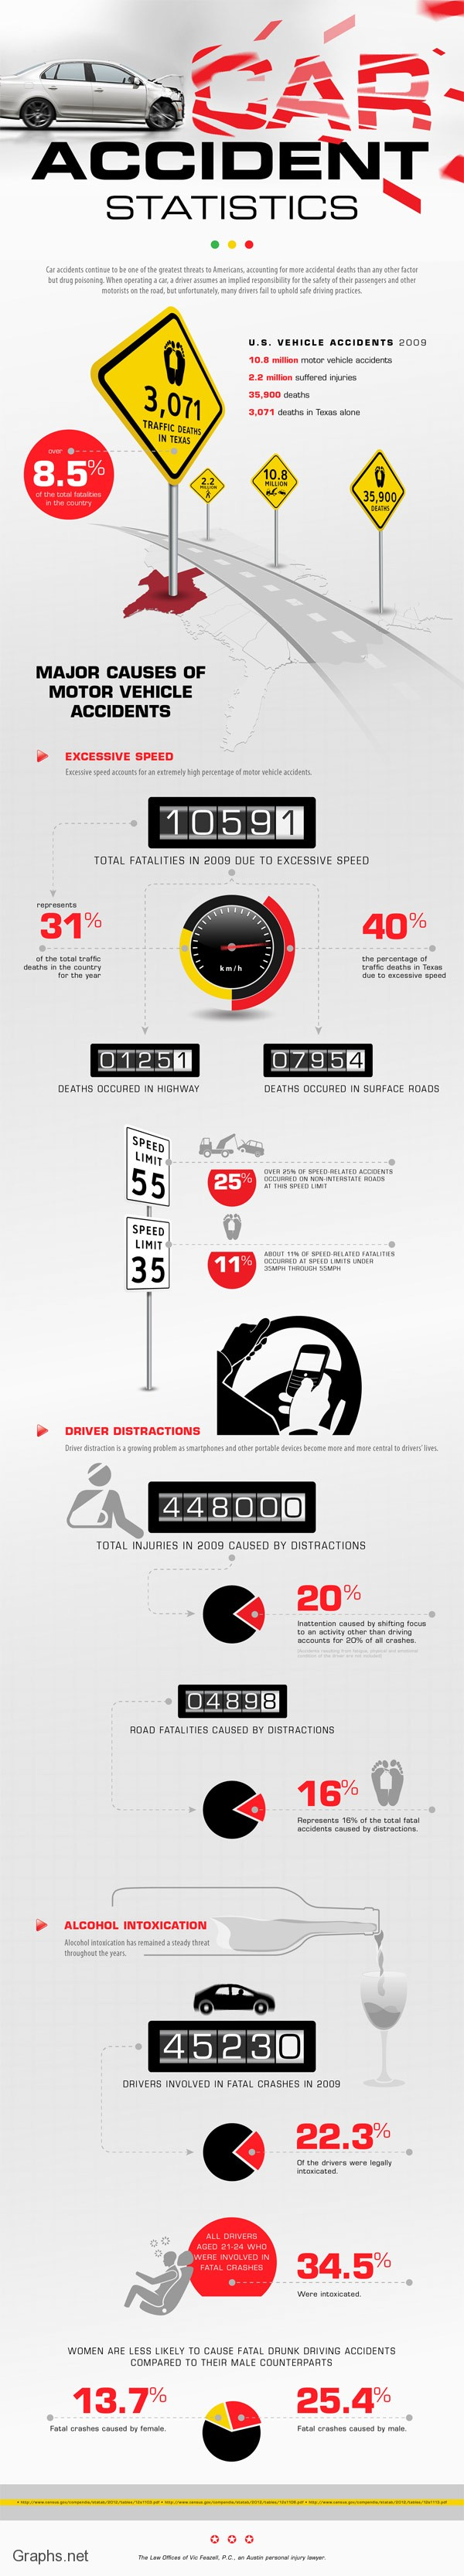 More car accident statistics